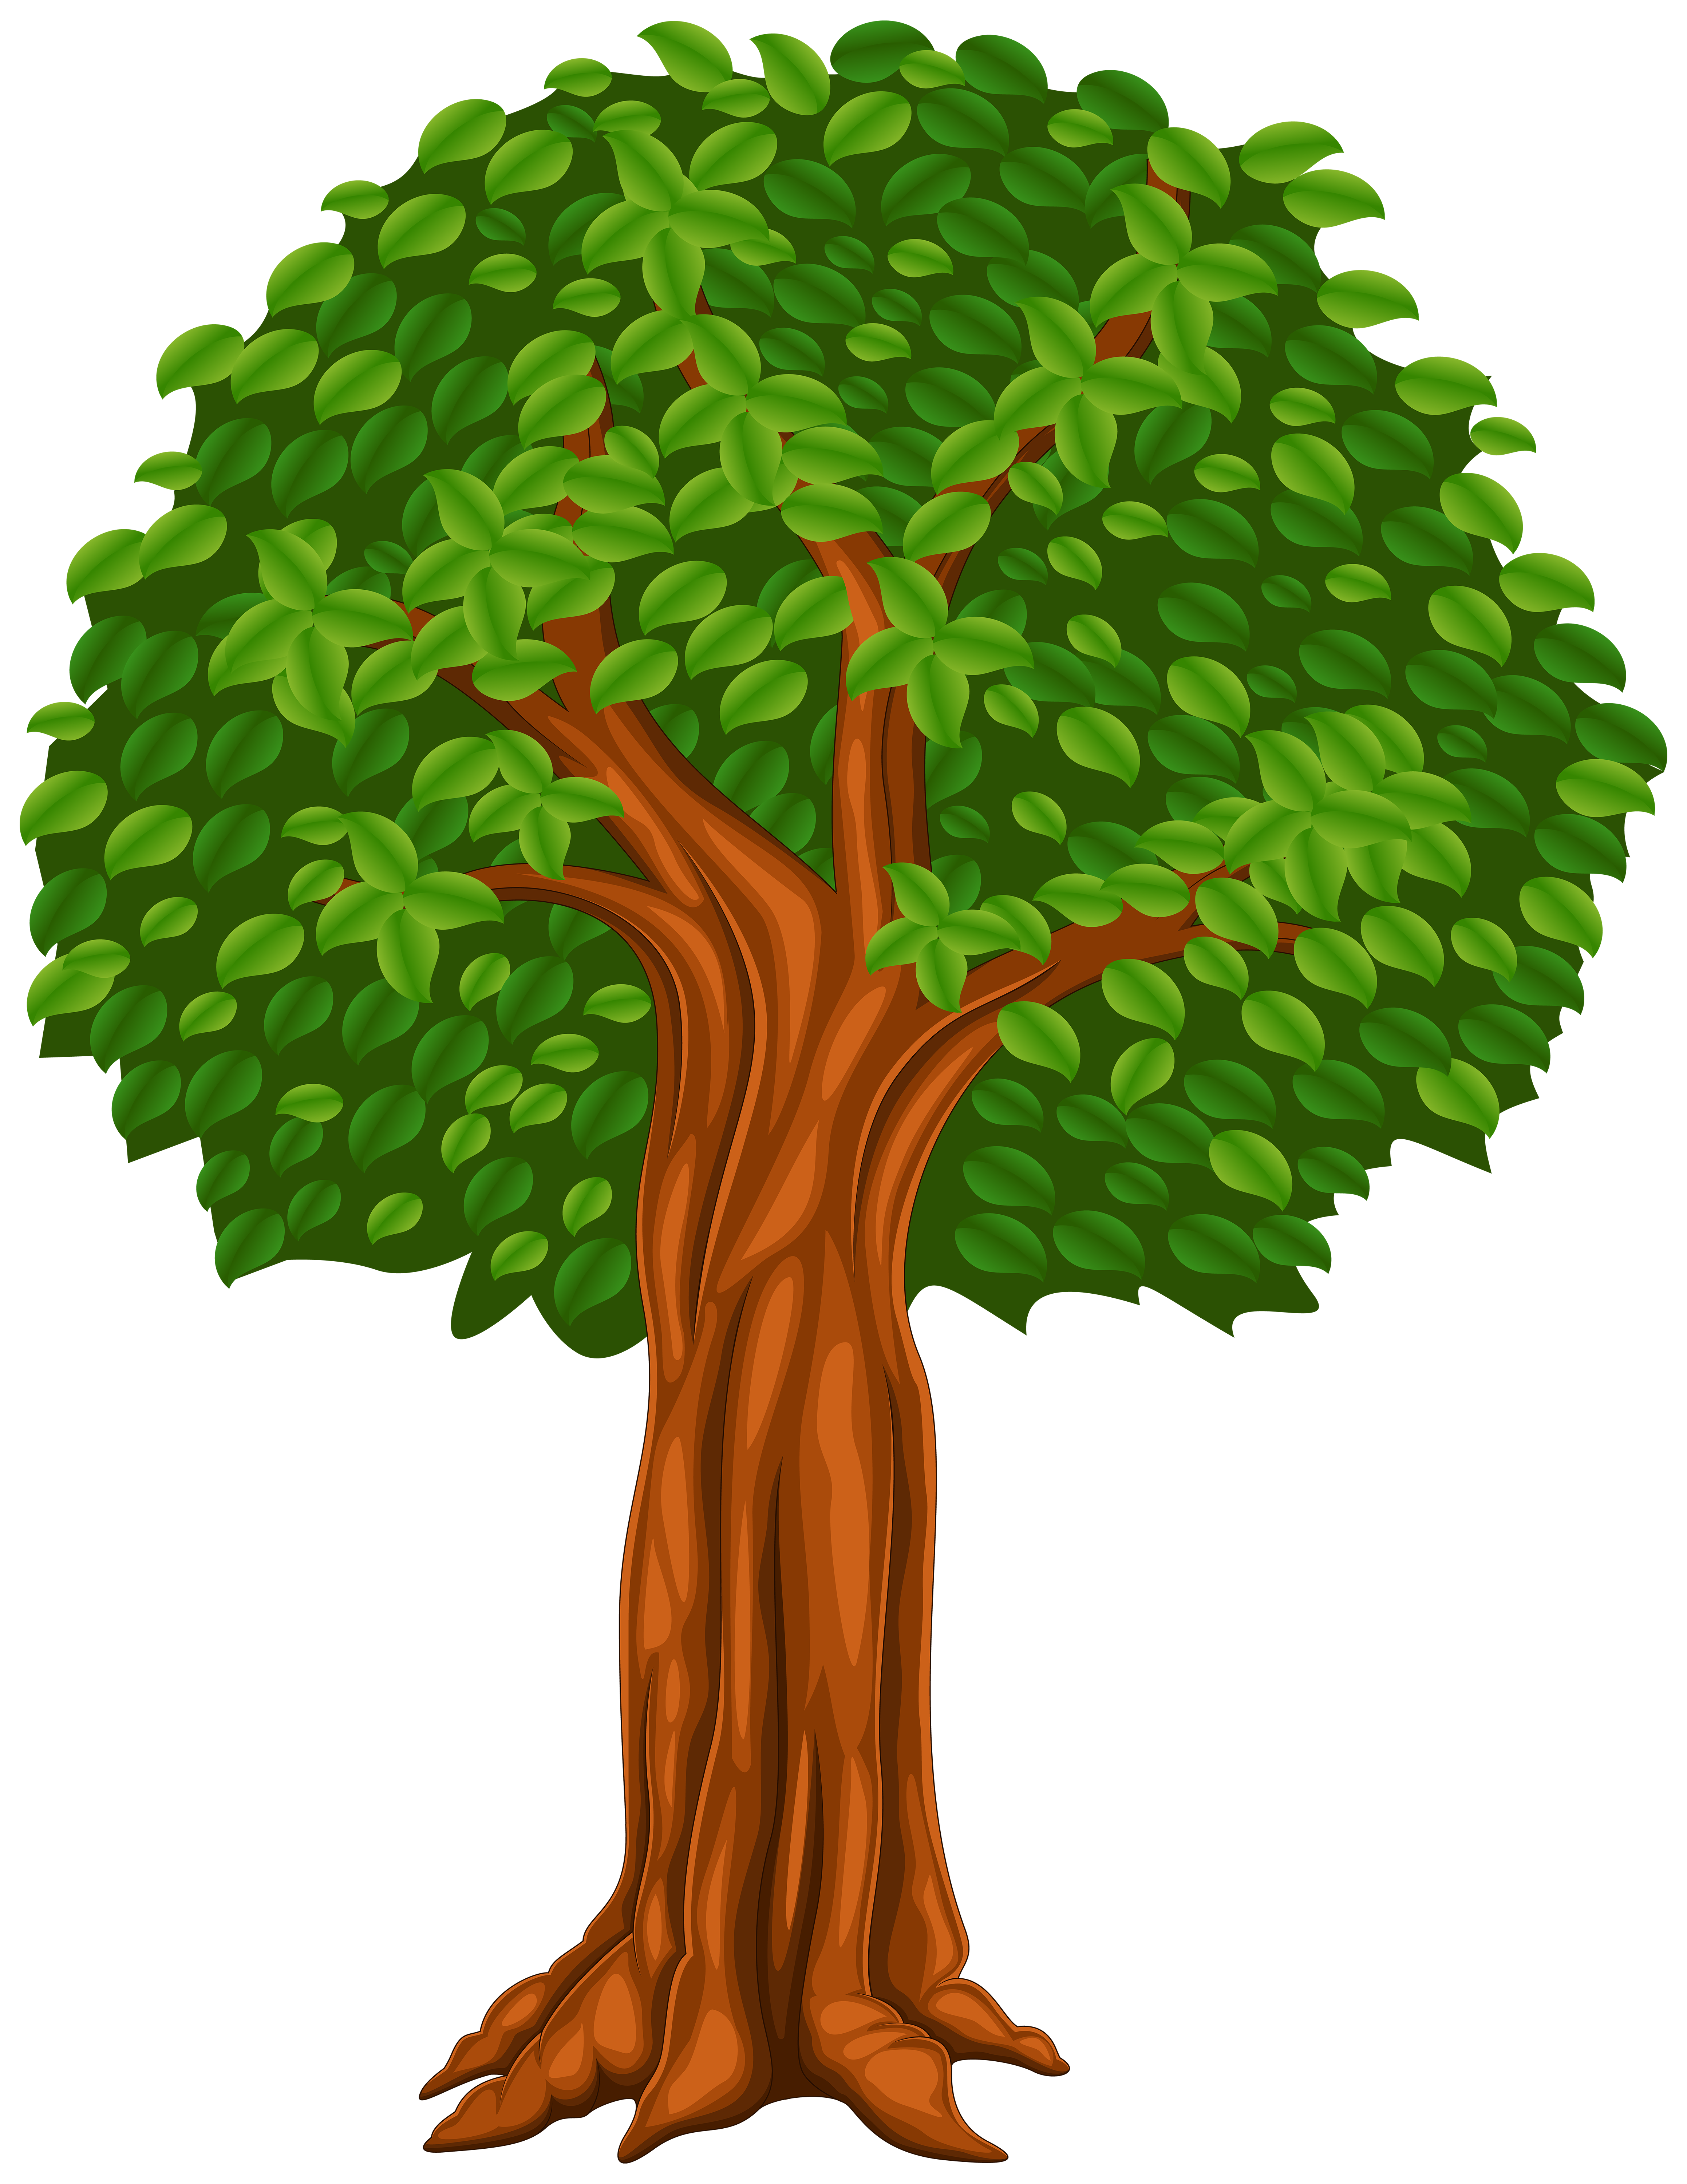 Clip art image gallery. Tree cartoon png clipart transparent stock